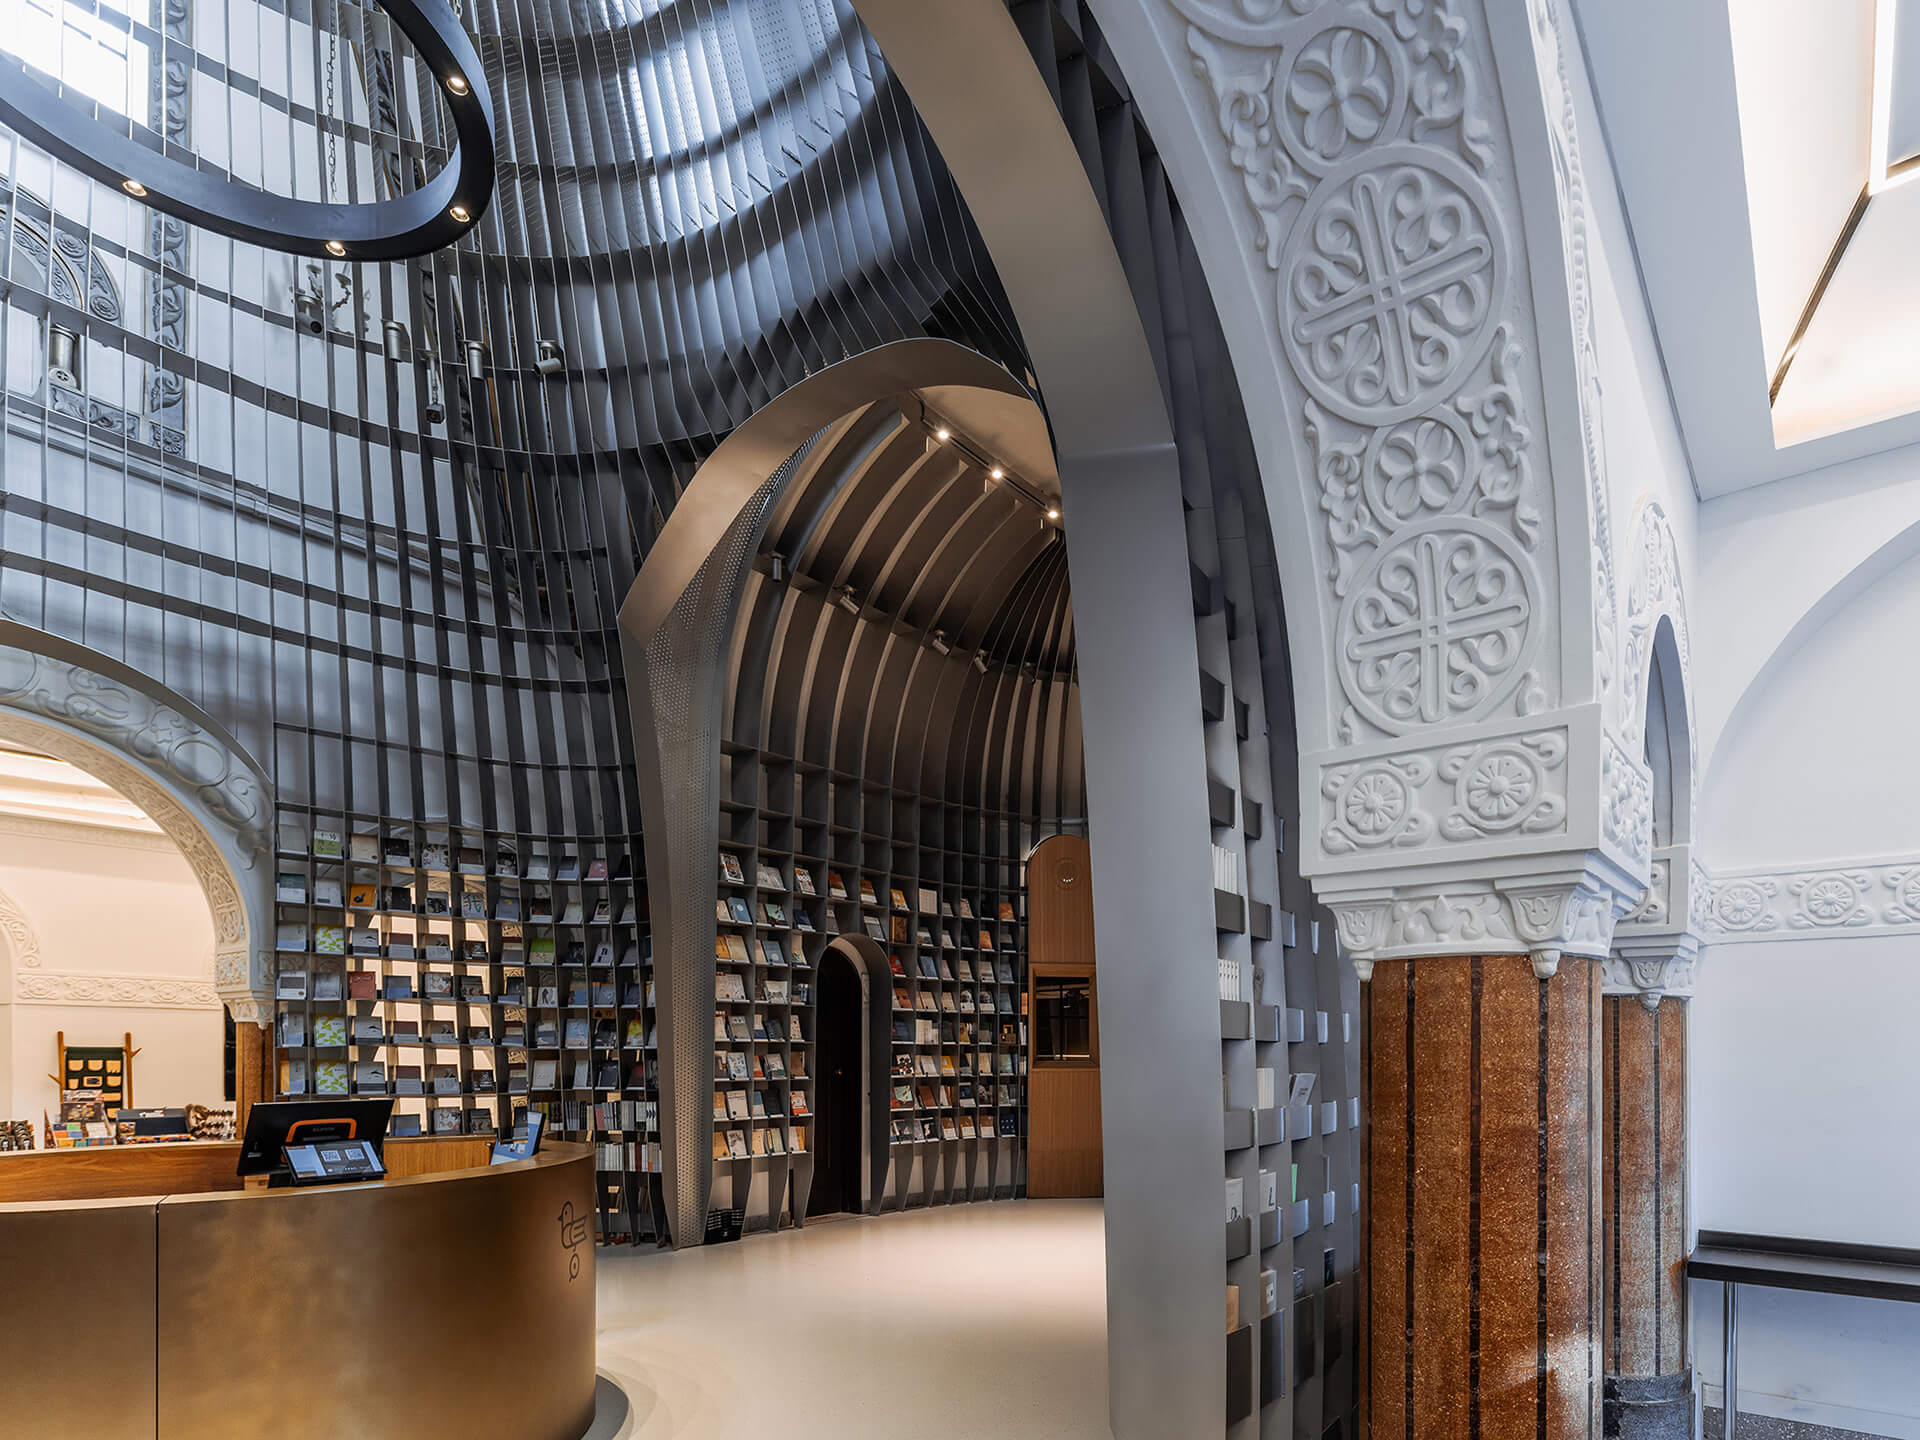 The inserted steel framework leaves a gap of 50 cm from the old walls of the church | Sinan Books Poetry Store by Wutopia Lab | STIRworld